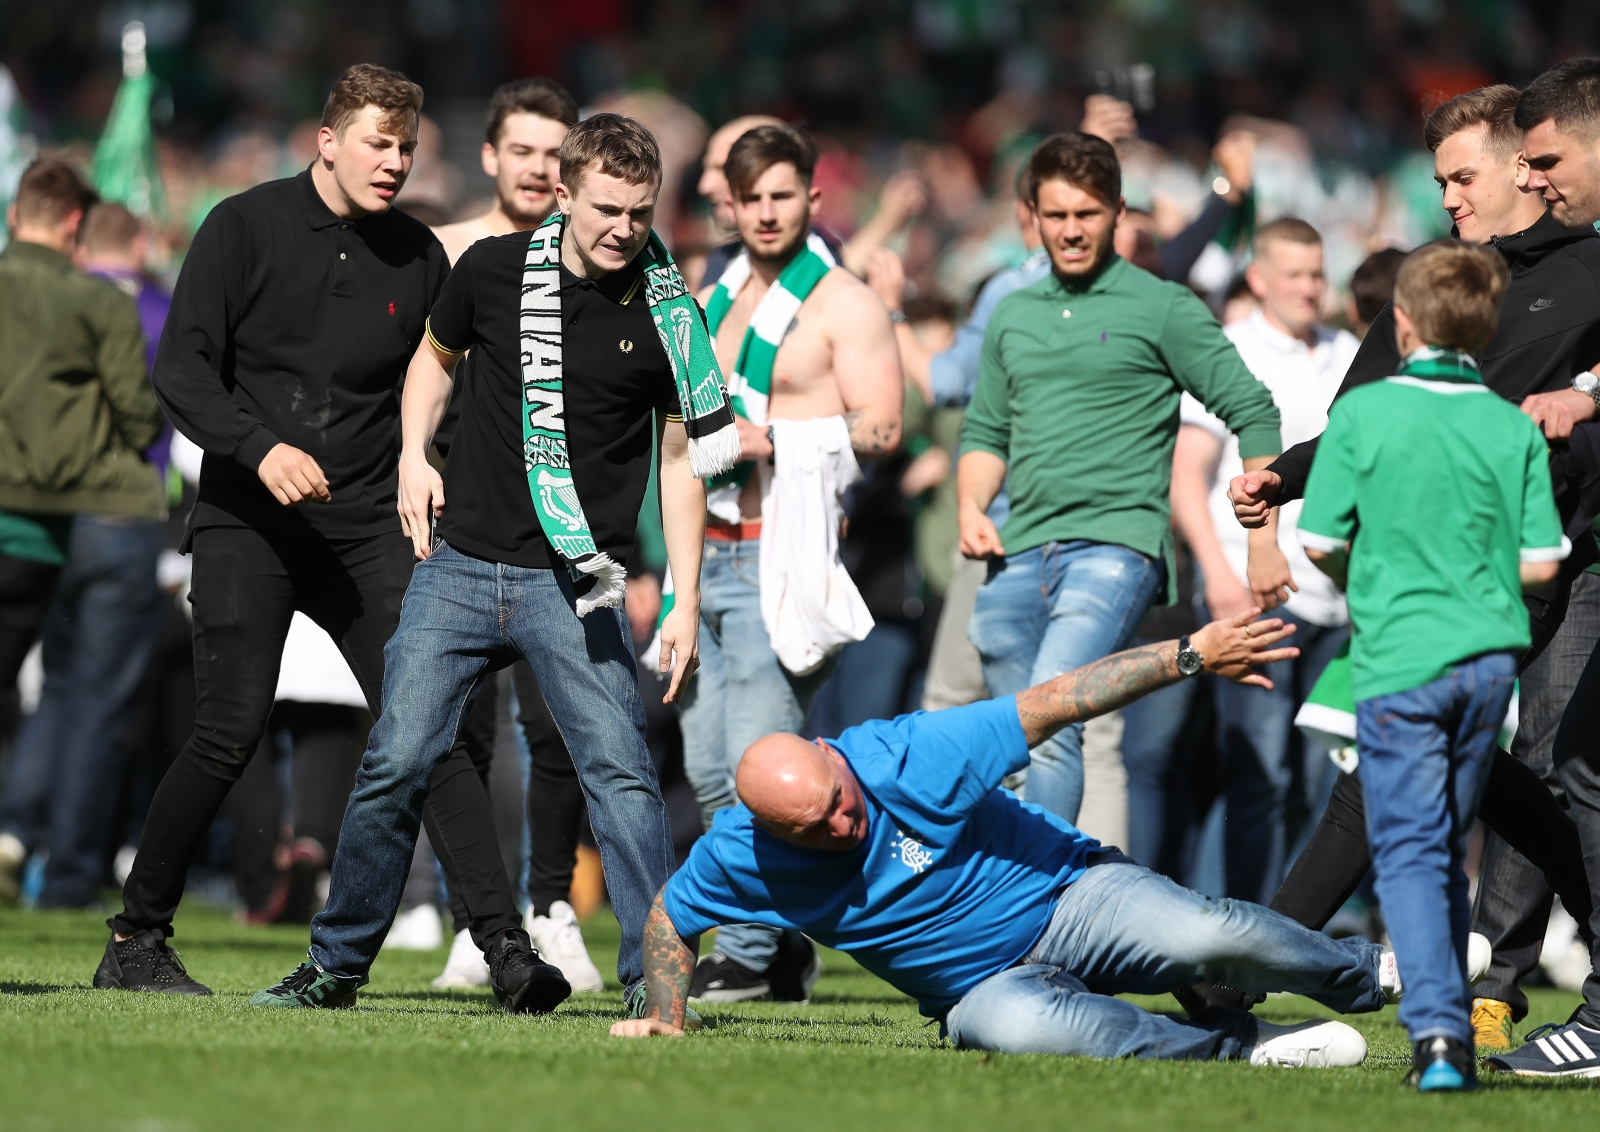 Scottish cup final pitch invasion